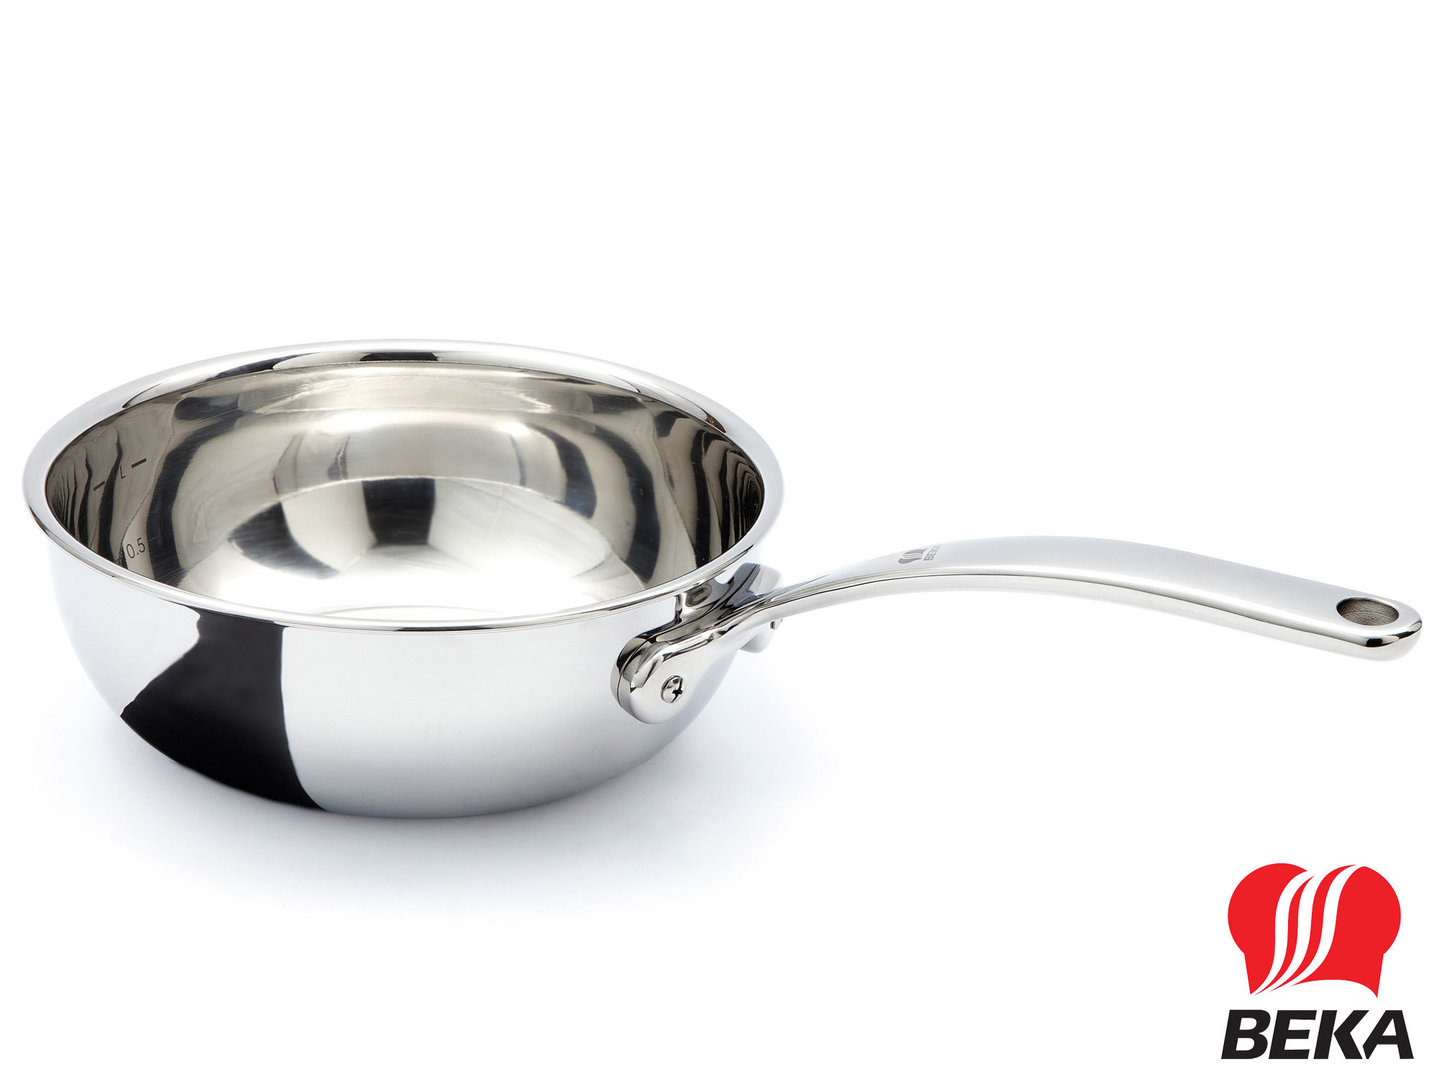 Conical 3 Ply Stainless Steel Saucepot 20 Cm Buy Online